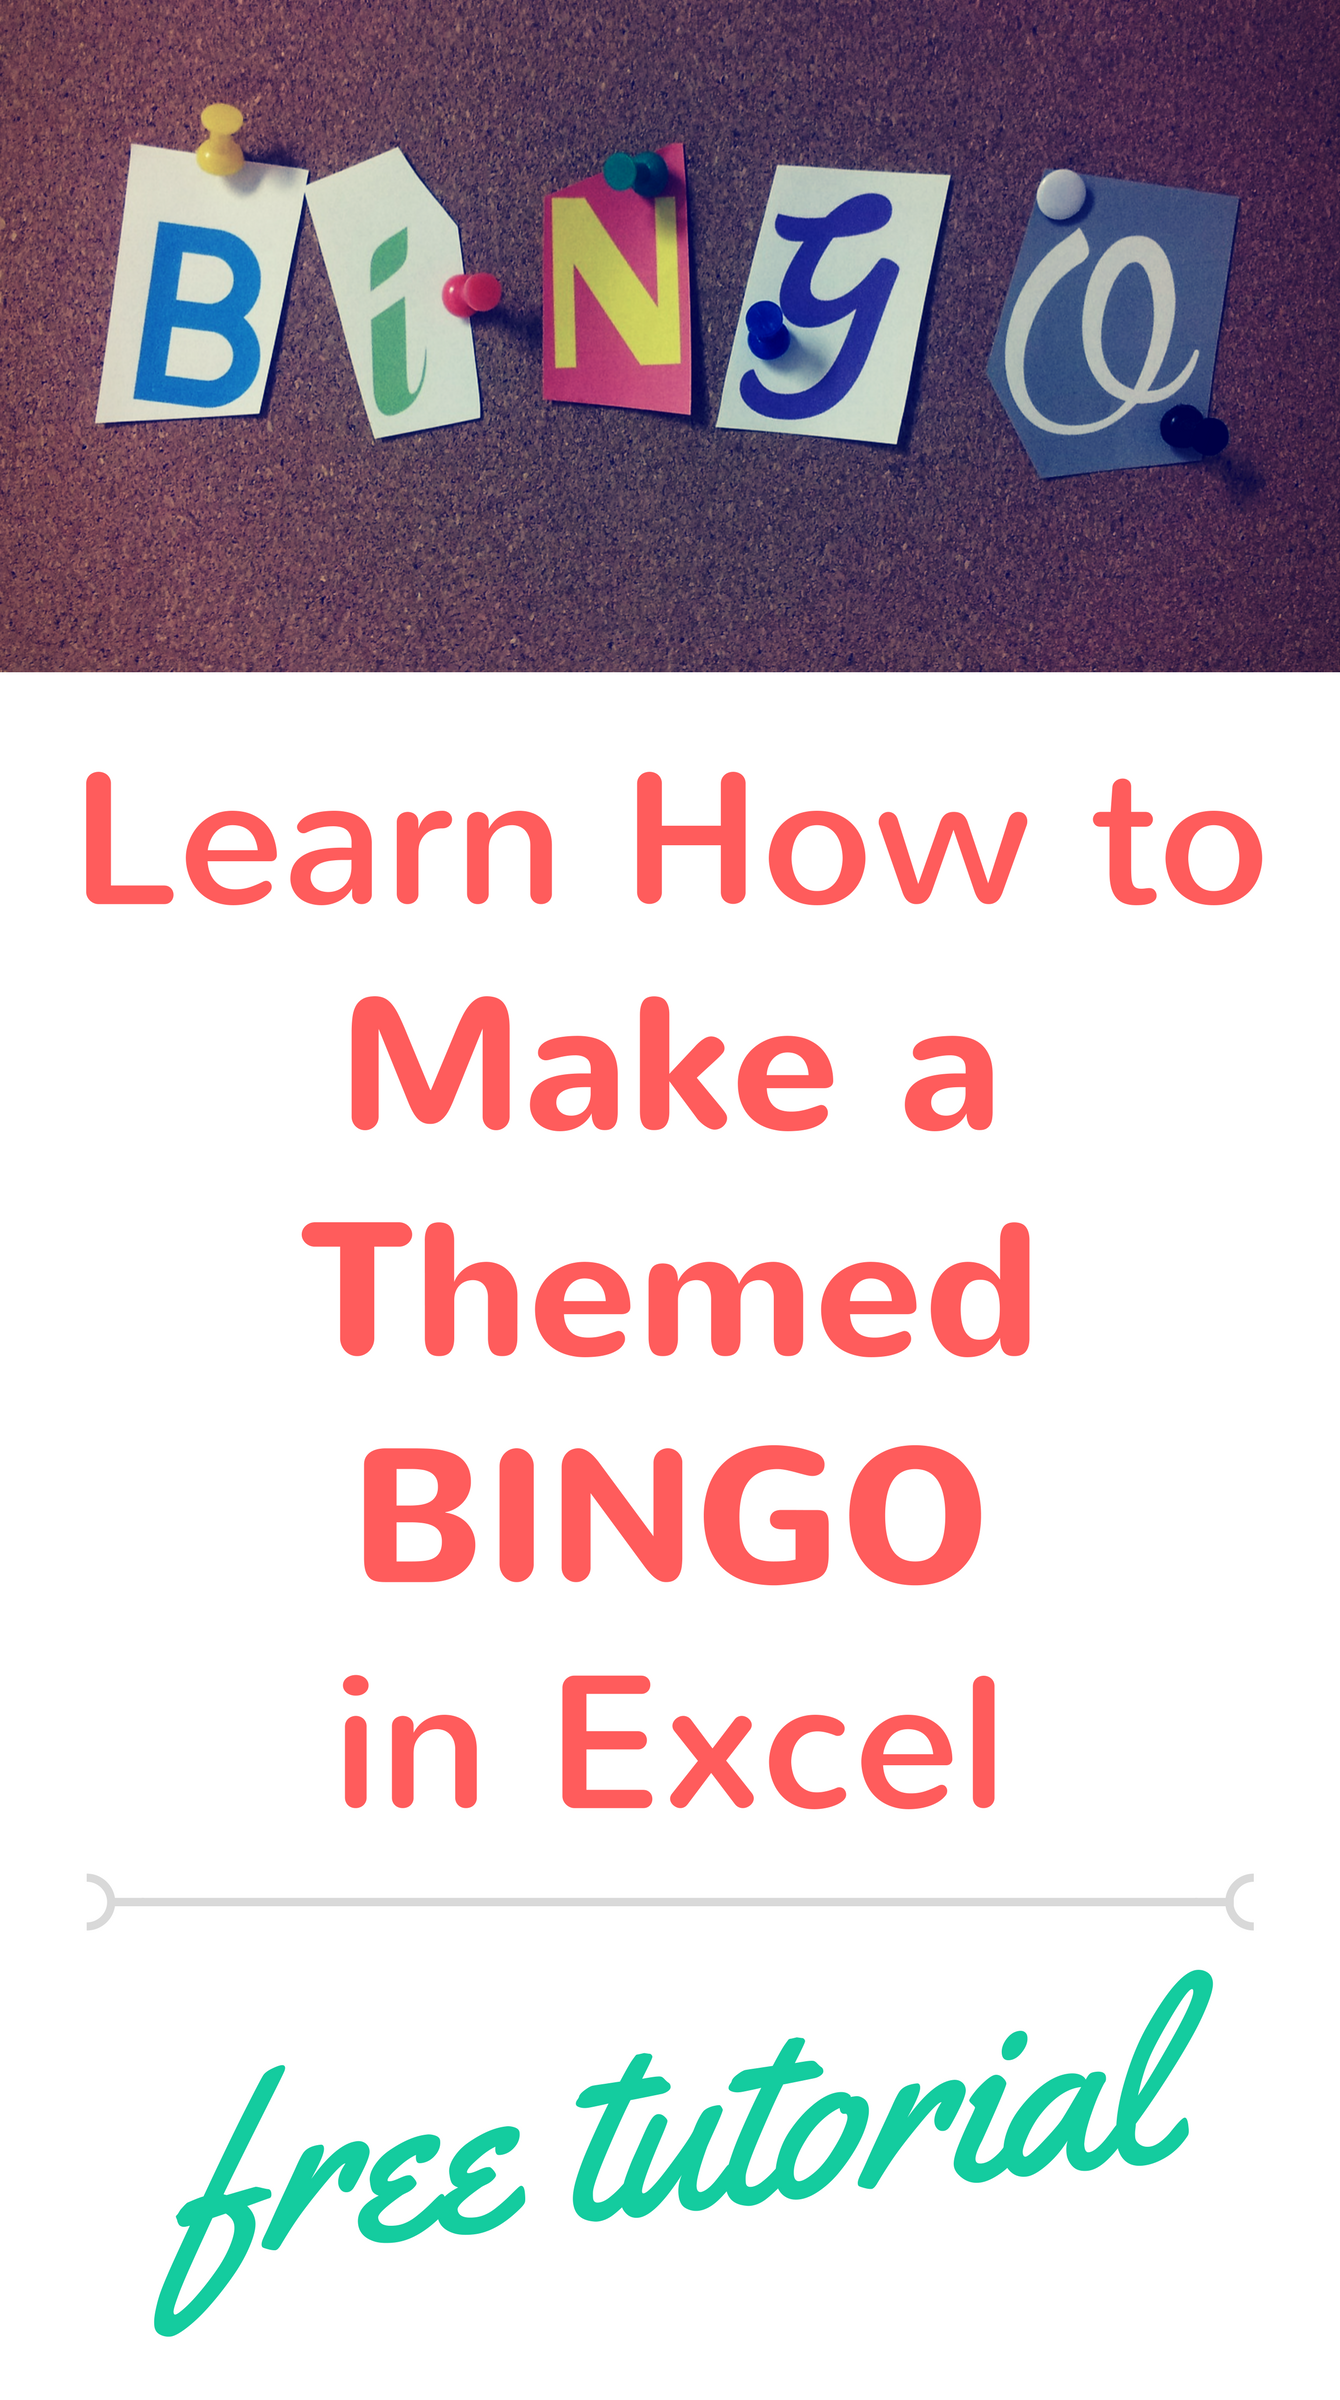 Create Bingo Game Cards Using Excel Short Tutorial On How To Make Bingo Cards That You Can Customize For Any Theme Bing Bingo Bingo Cards Business For Kids